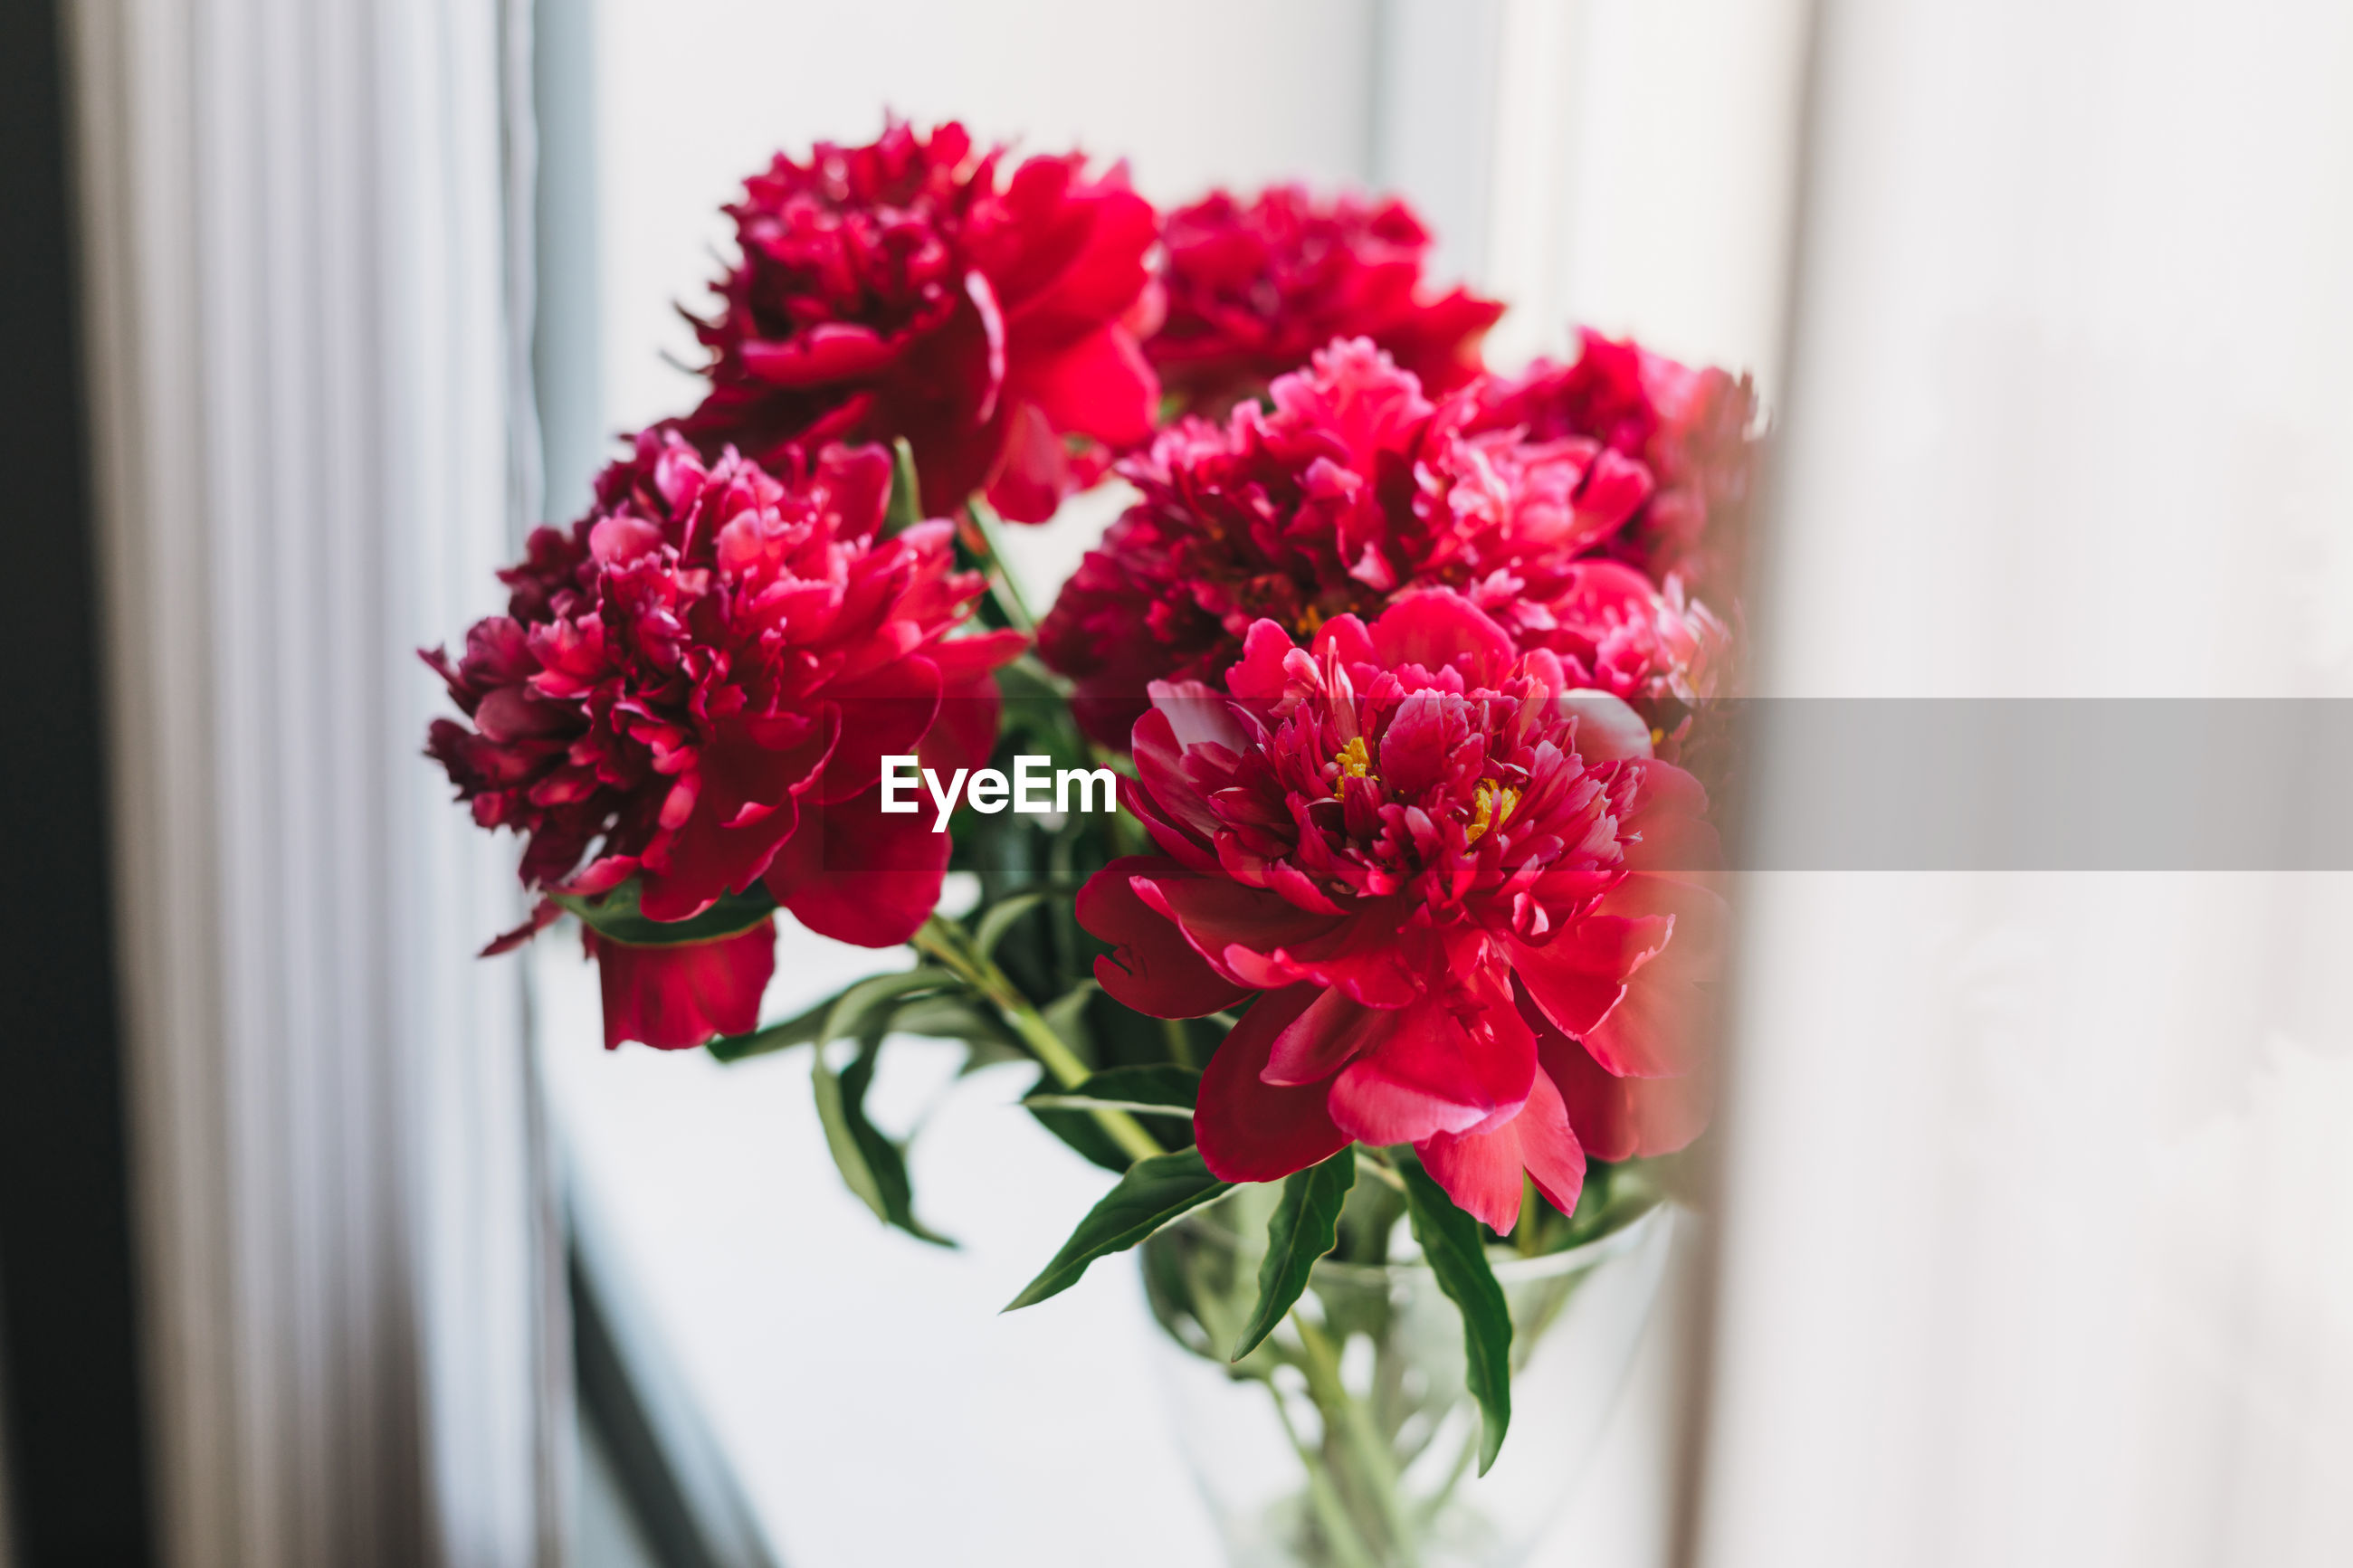 CLOSE-UP OF RED ROSE BOUQUET